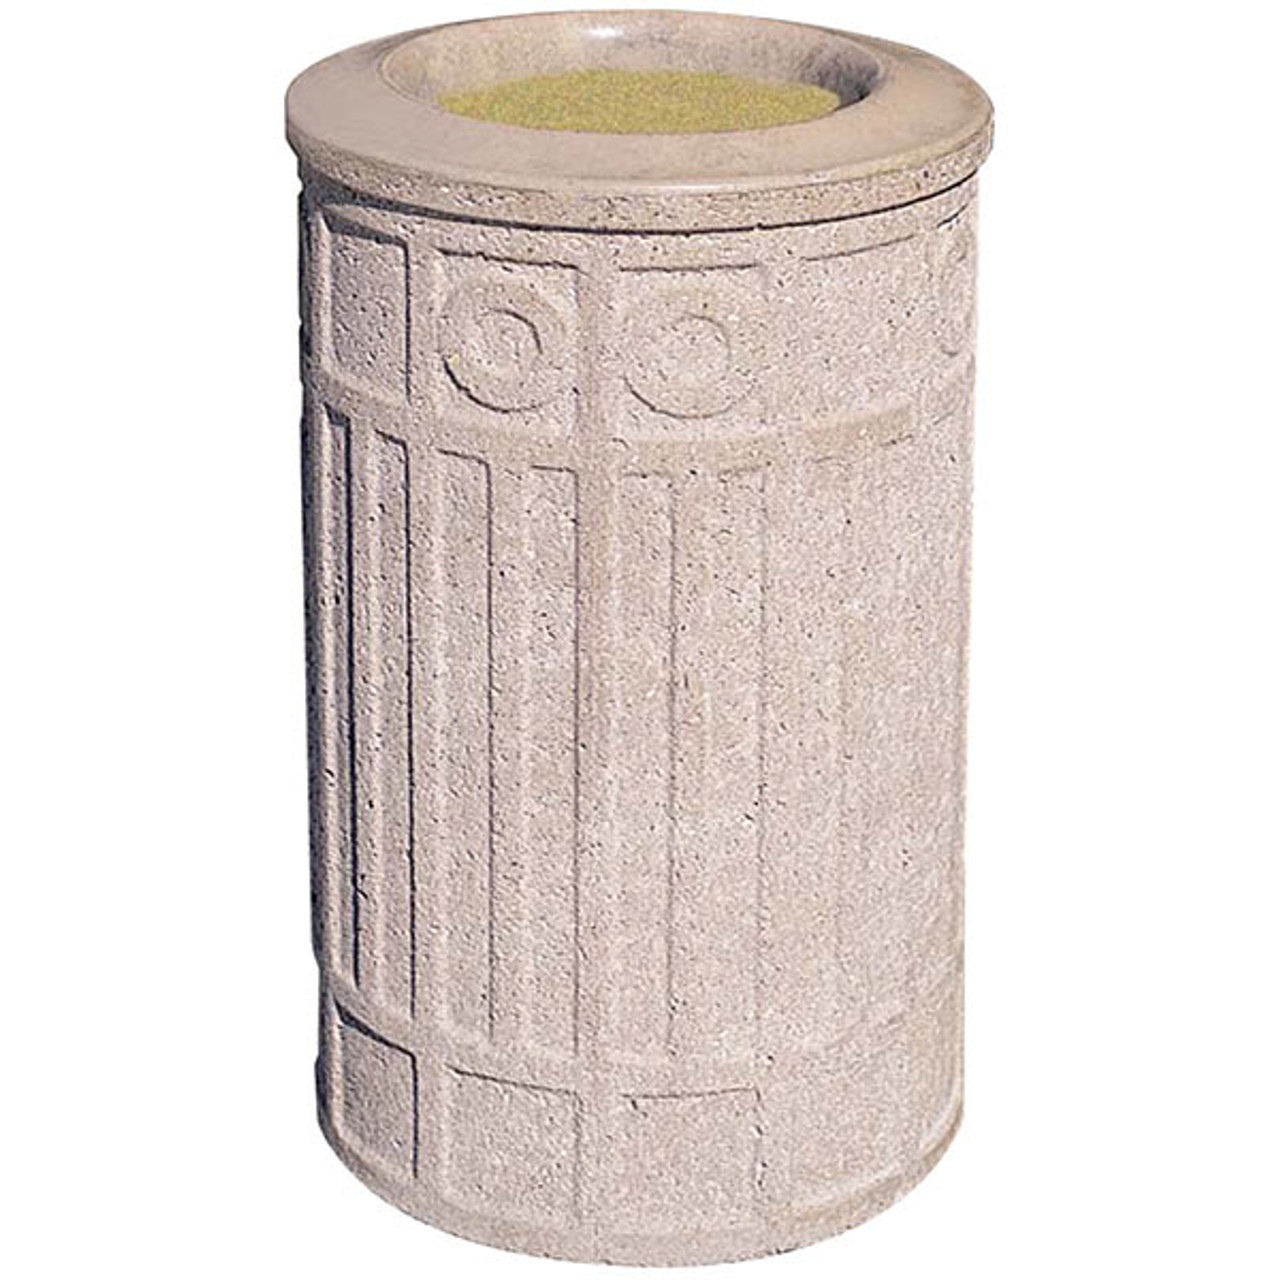 Concrete Ash Urn Outdoor Ashtray Smokers Receptacle WS2006